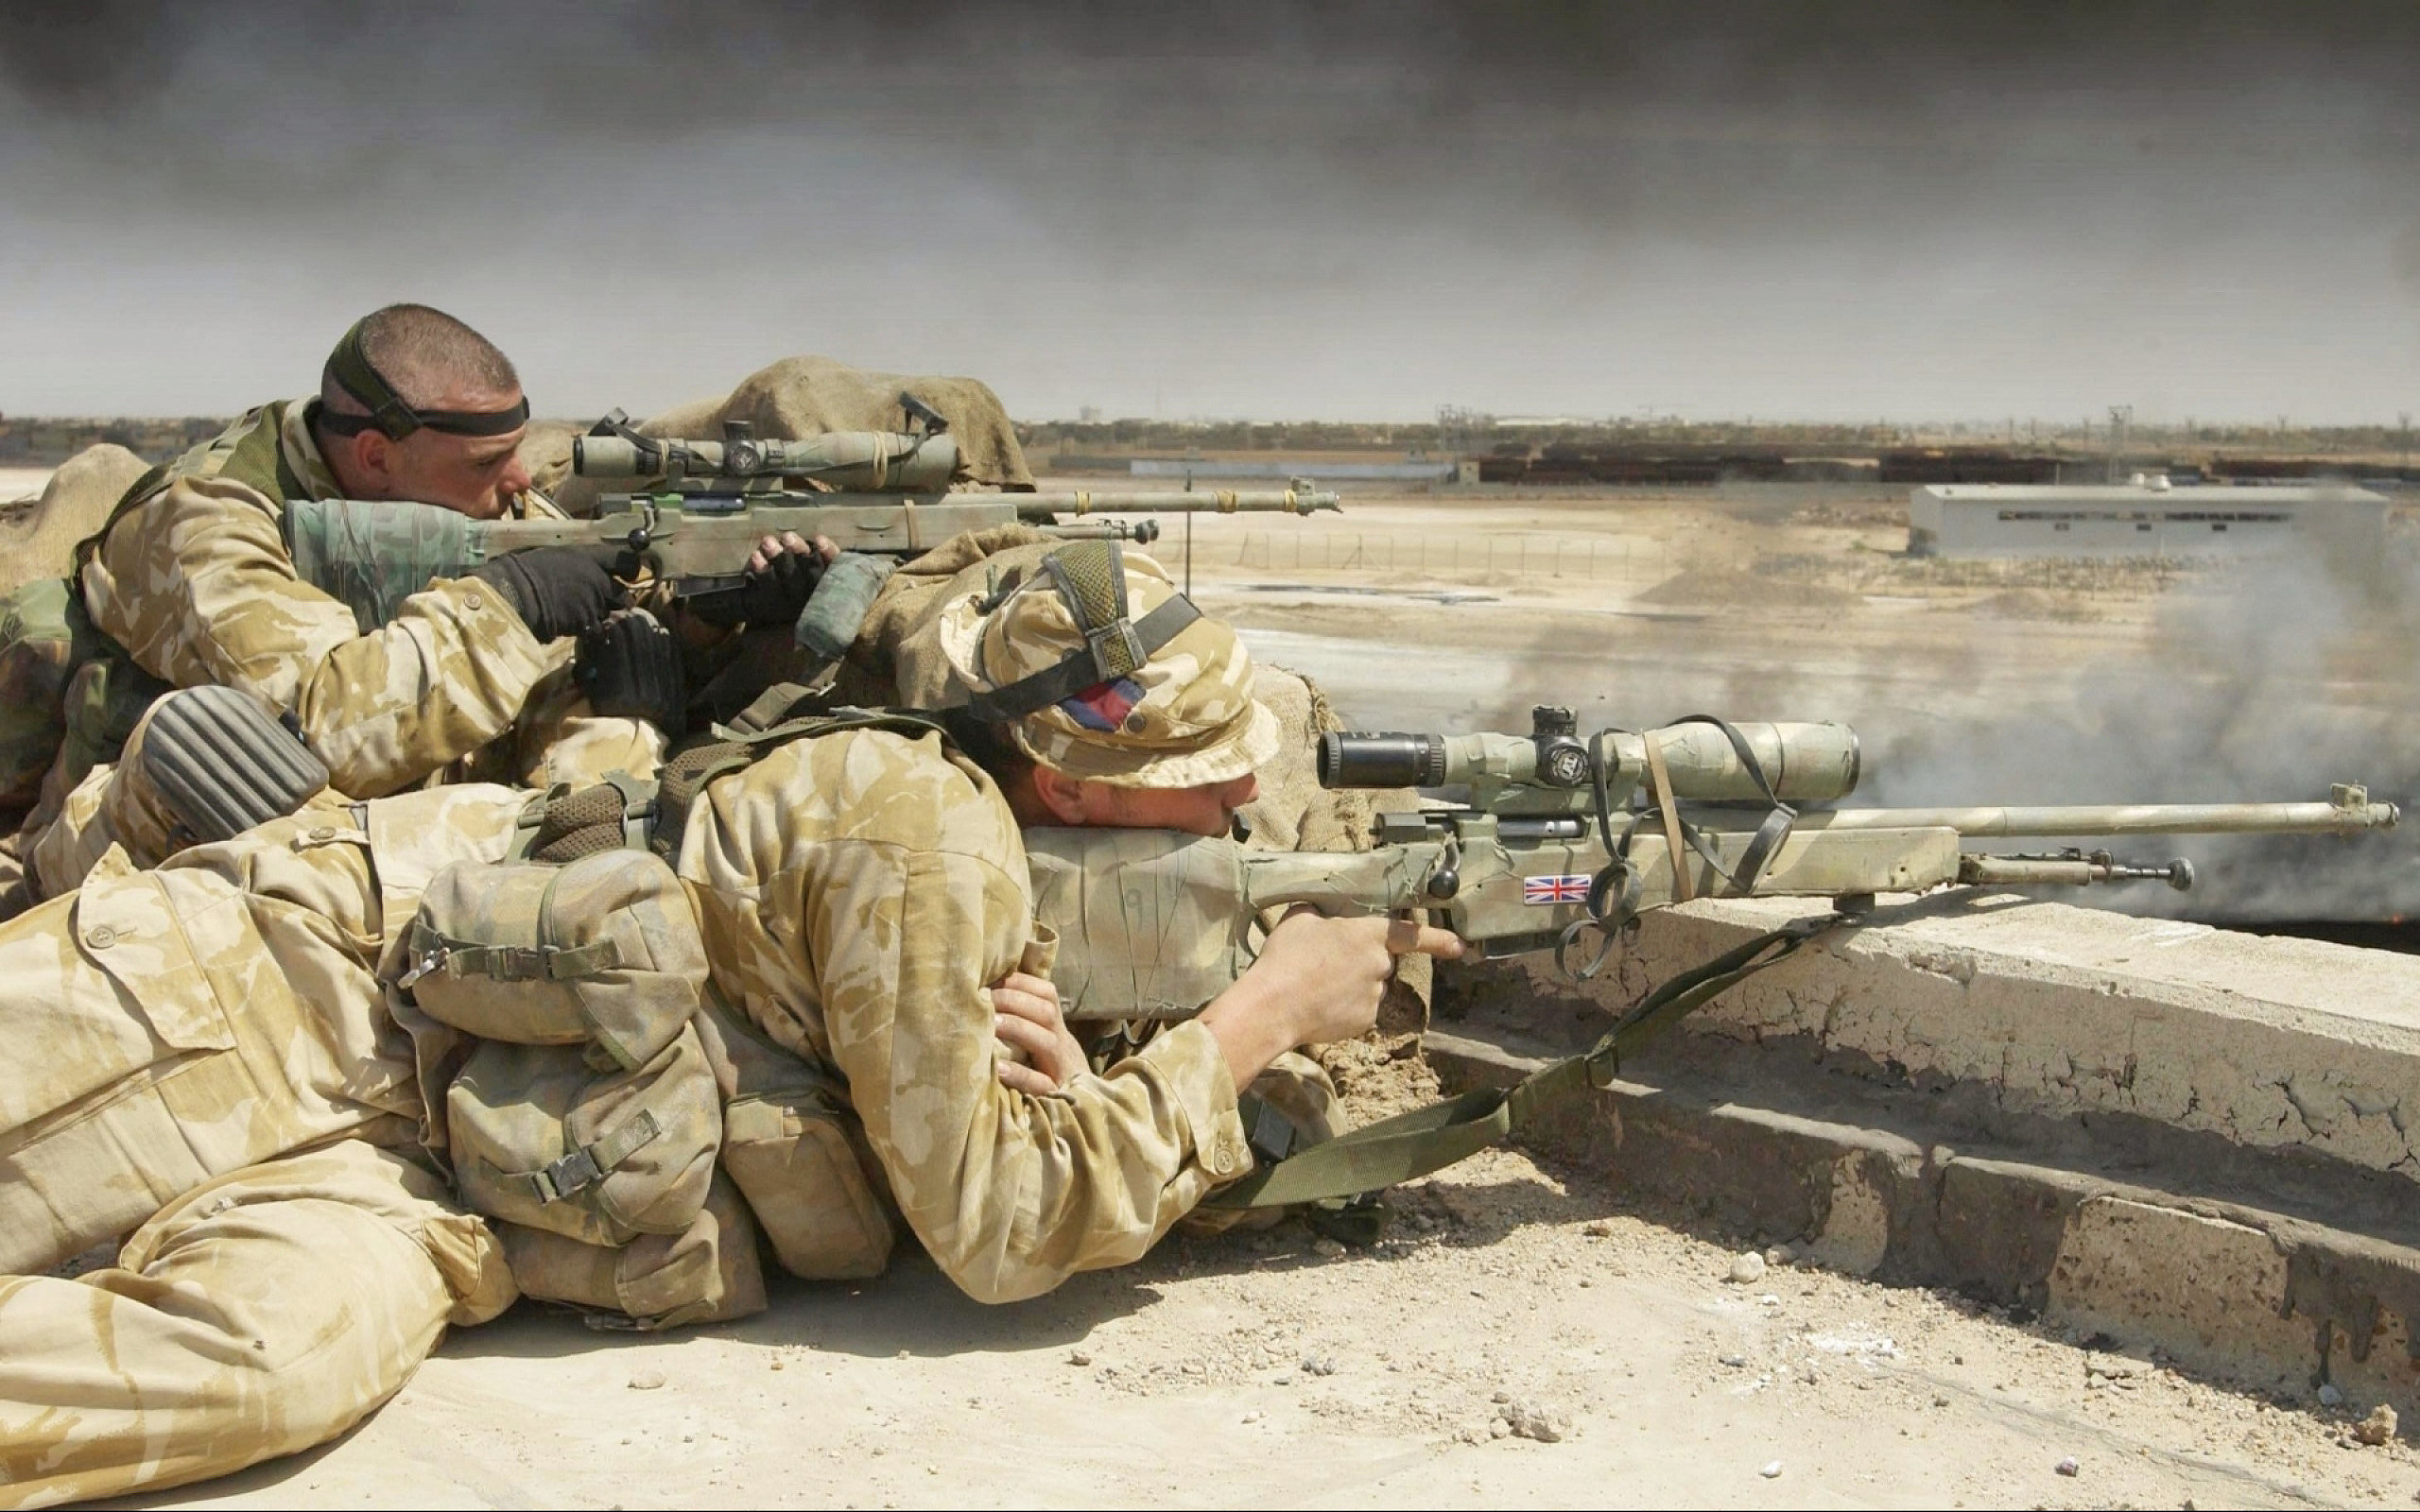 2560x1600 HD Wallpaper | Background Image ID:237974.  Military Sniper